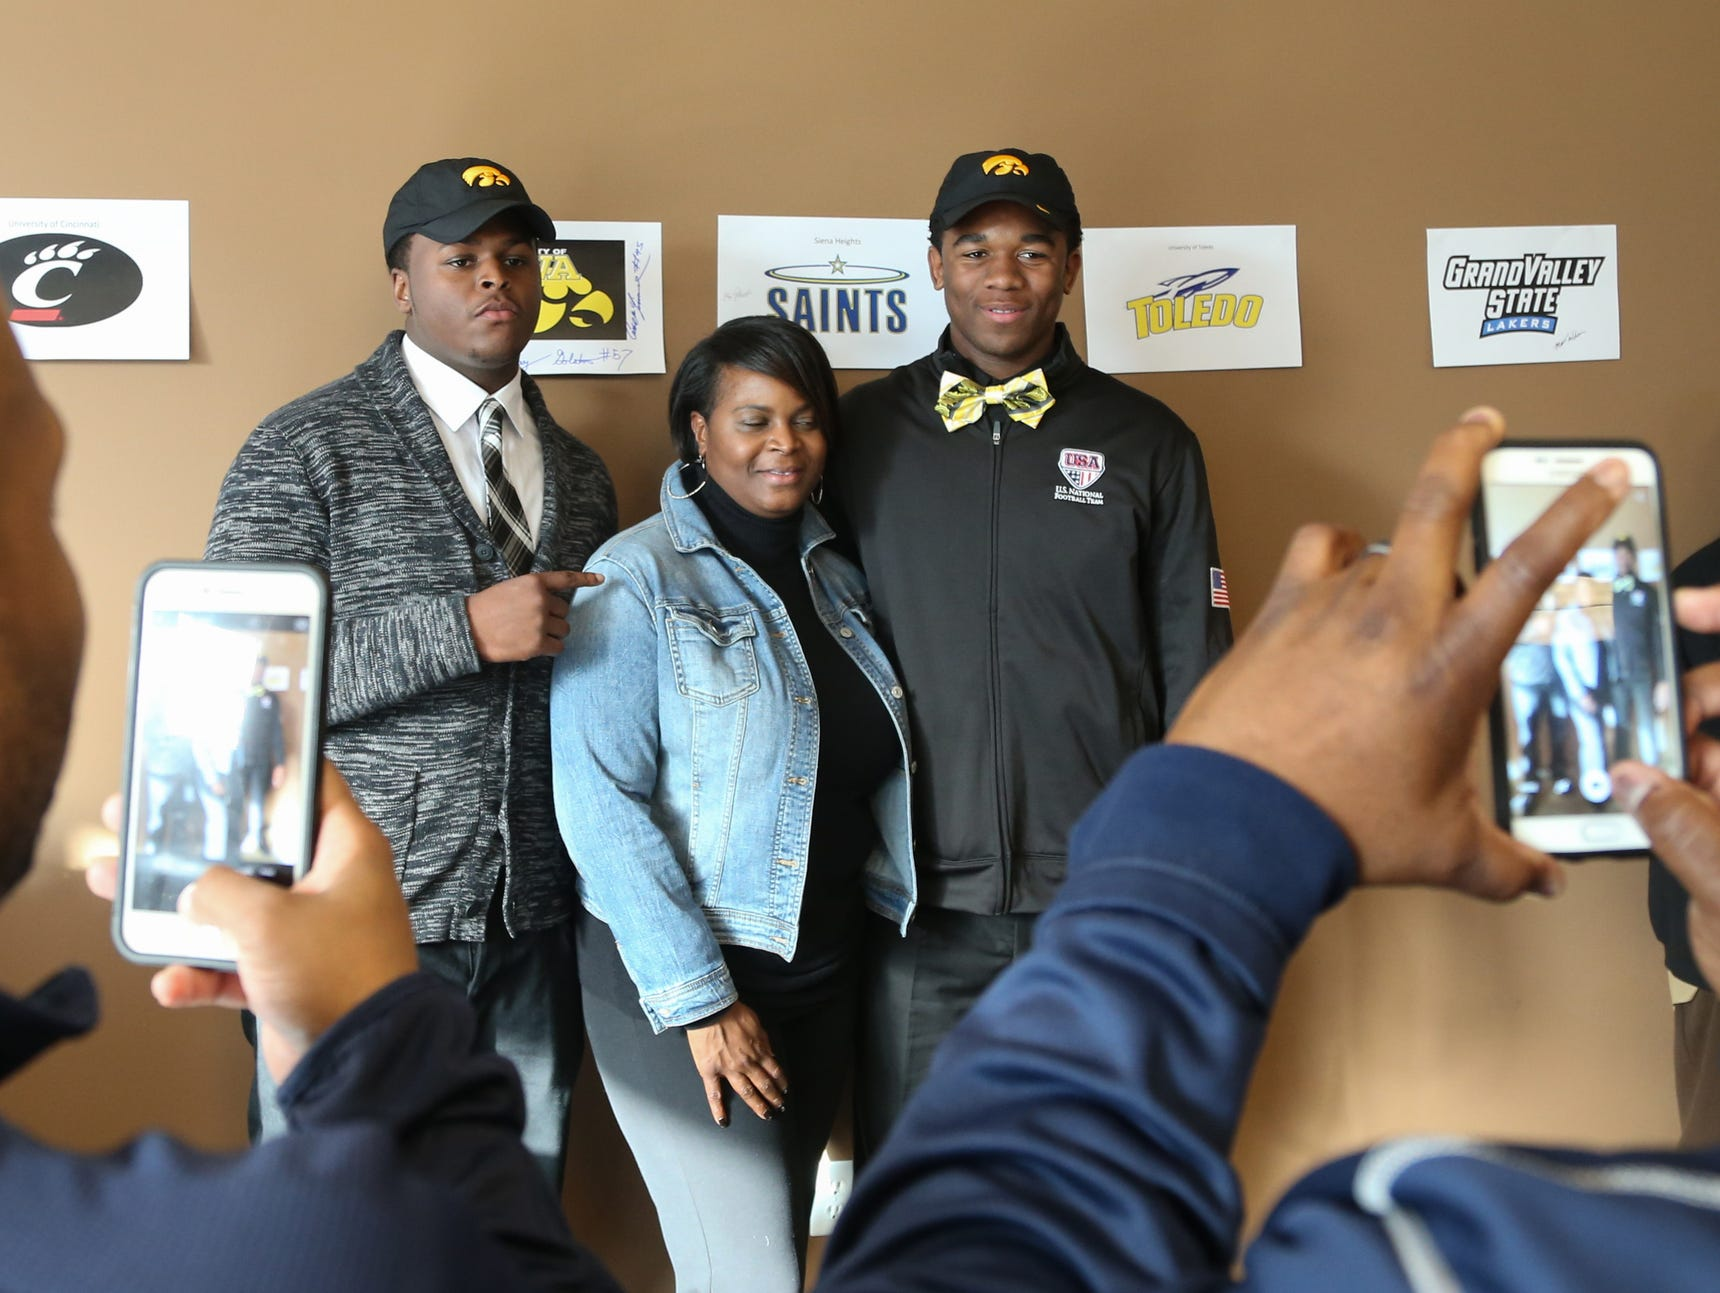 East English Village High's Cedrick Lattimore his mom, Carla Spivey, and Chauncey Golston signed a letter of intent to play football at Iowa on Wednesday.